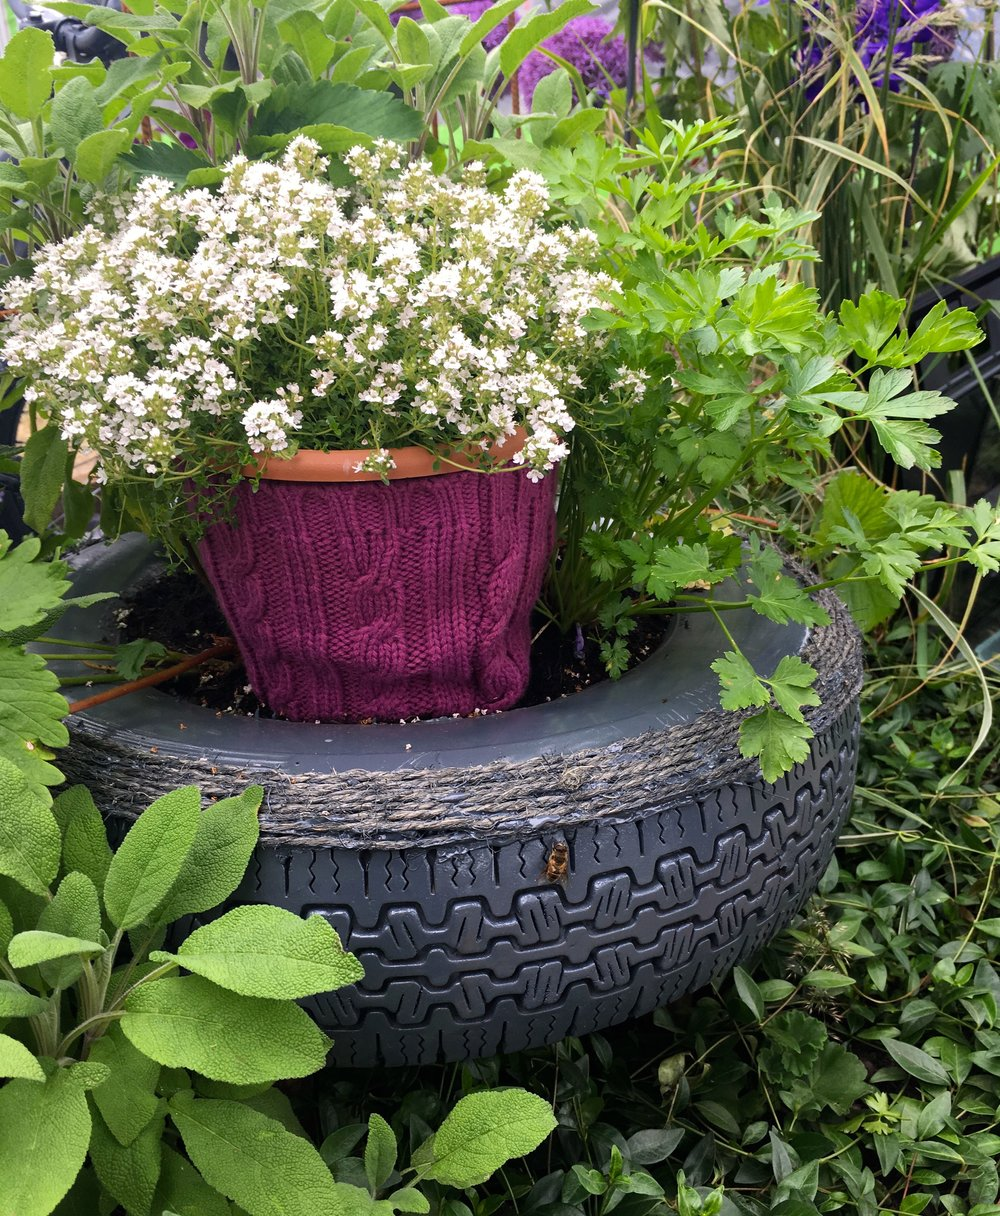 A KNITTED POT WARMER, OF COURSE